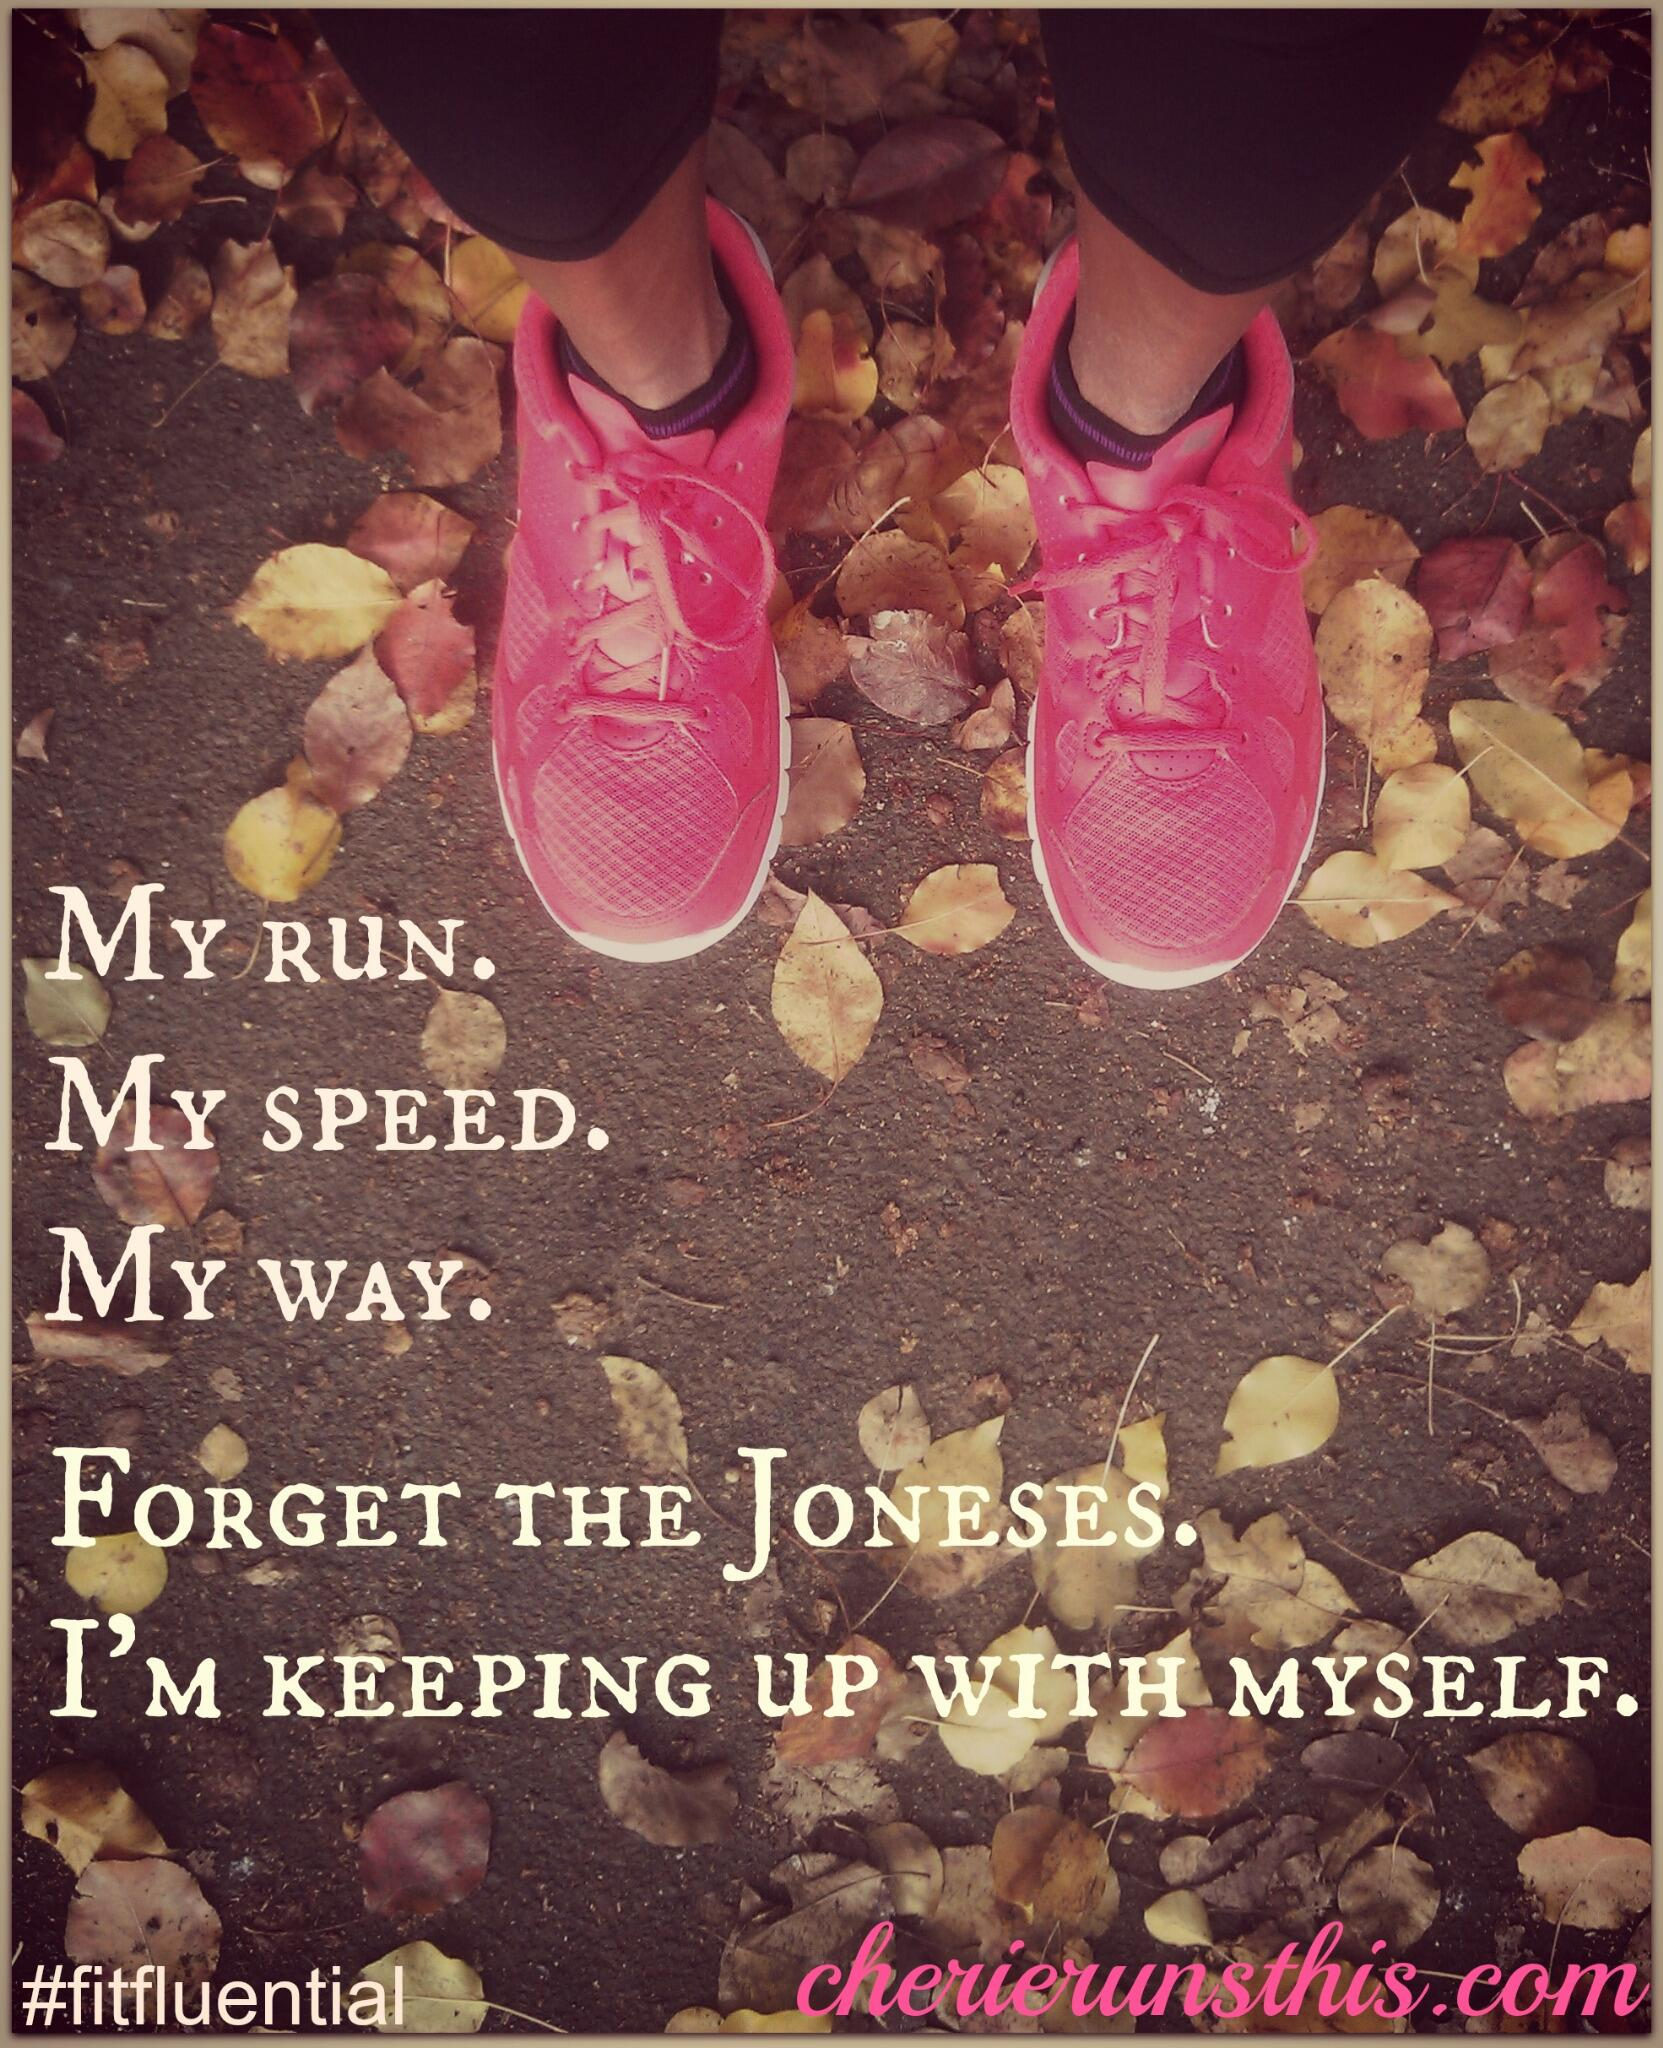 RT @cherielianne: Going to be slow since my month off, but I have to remember my old saying. @WomensRunning #runchat http://t.co/nsR0U6IBvS